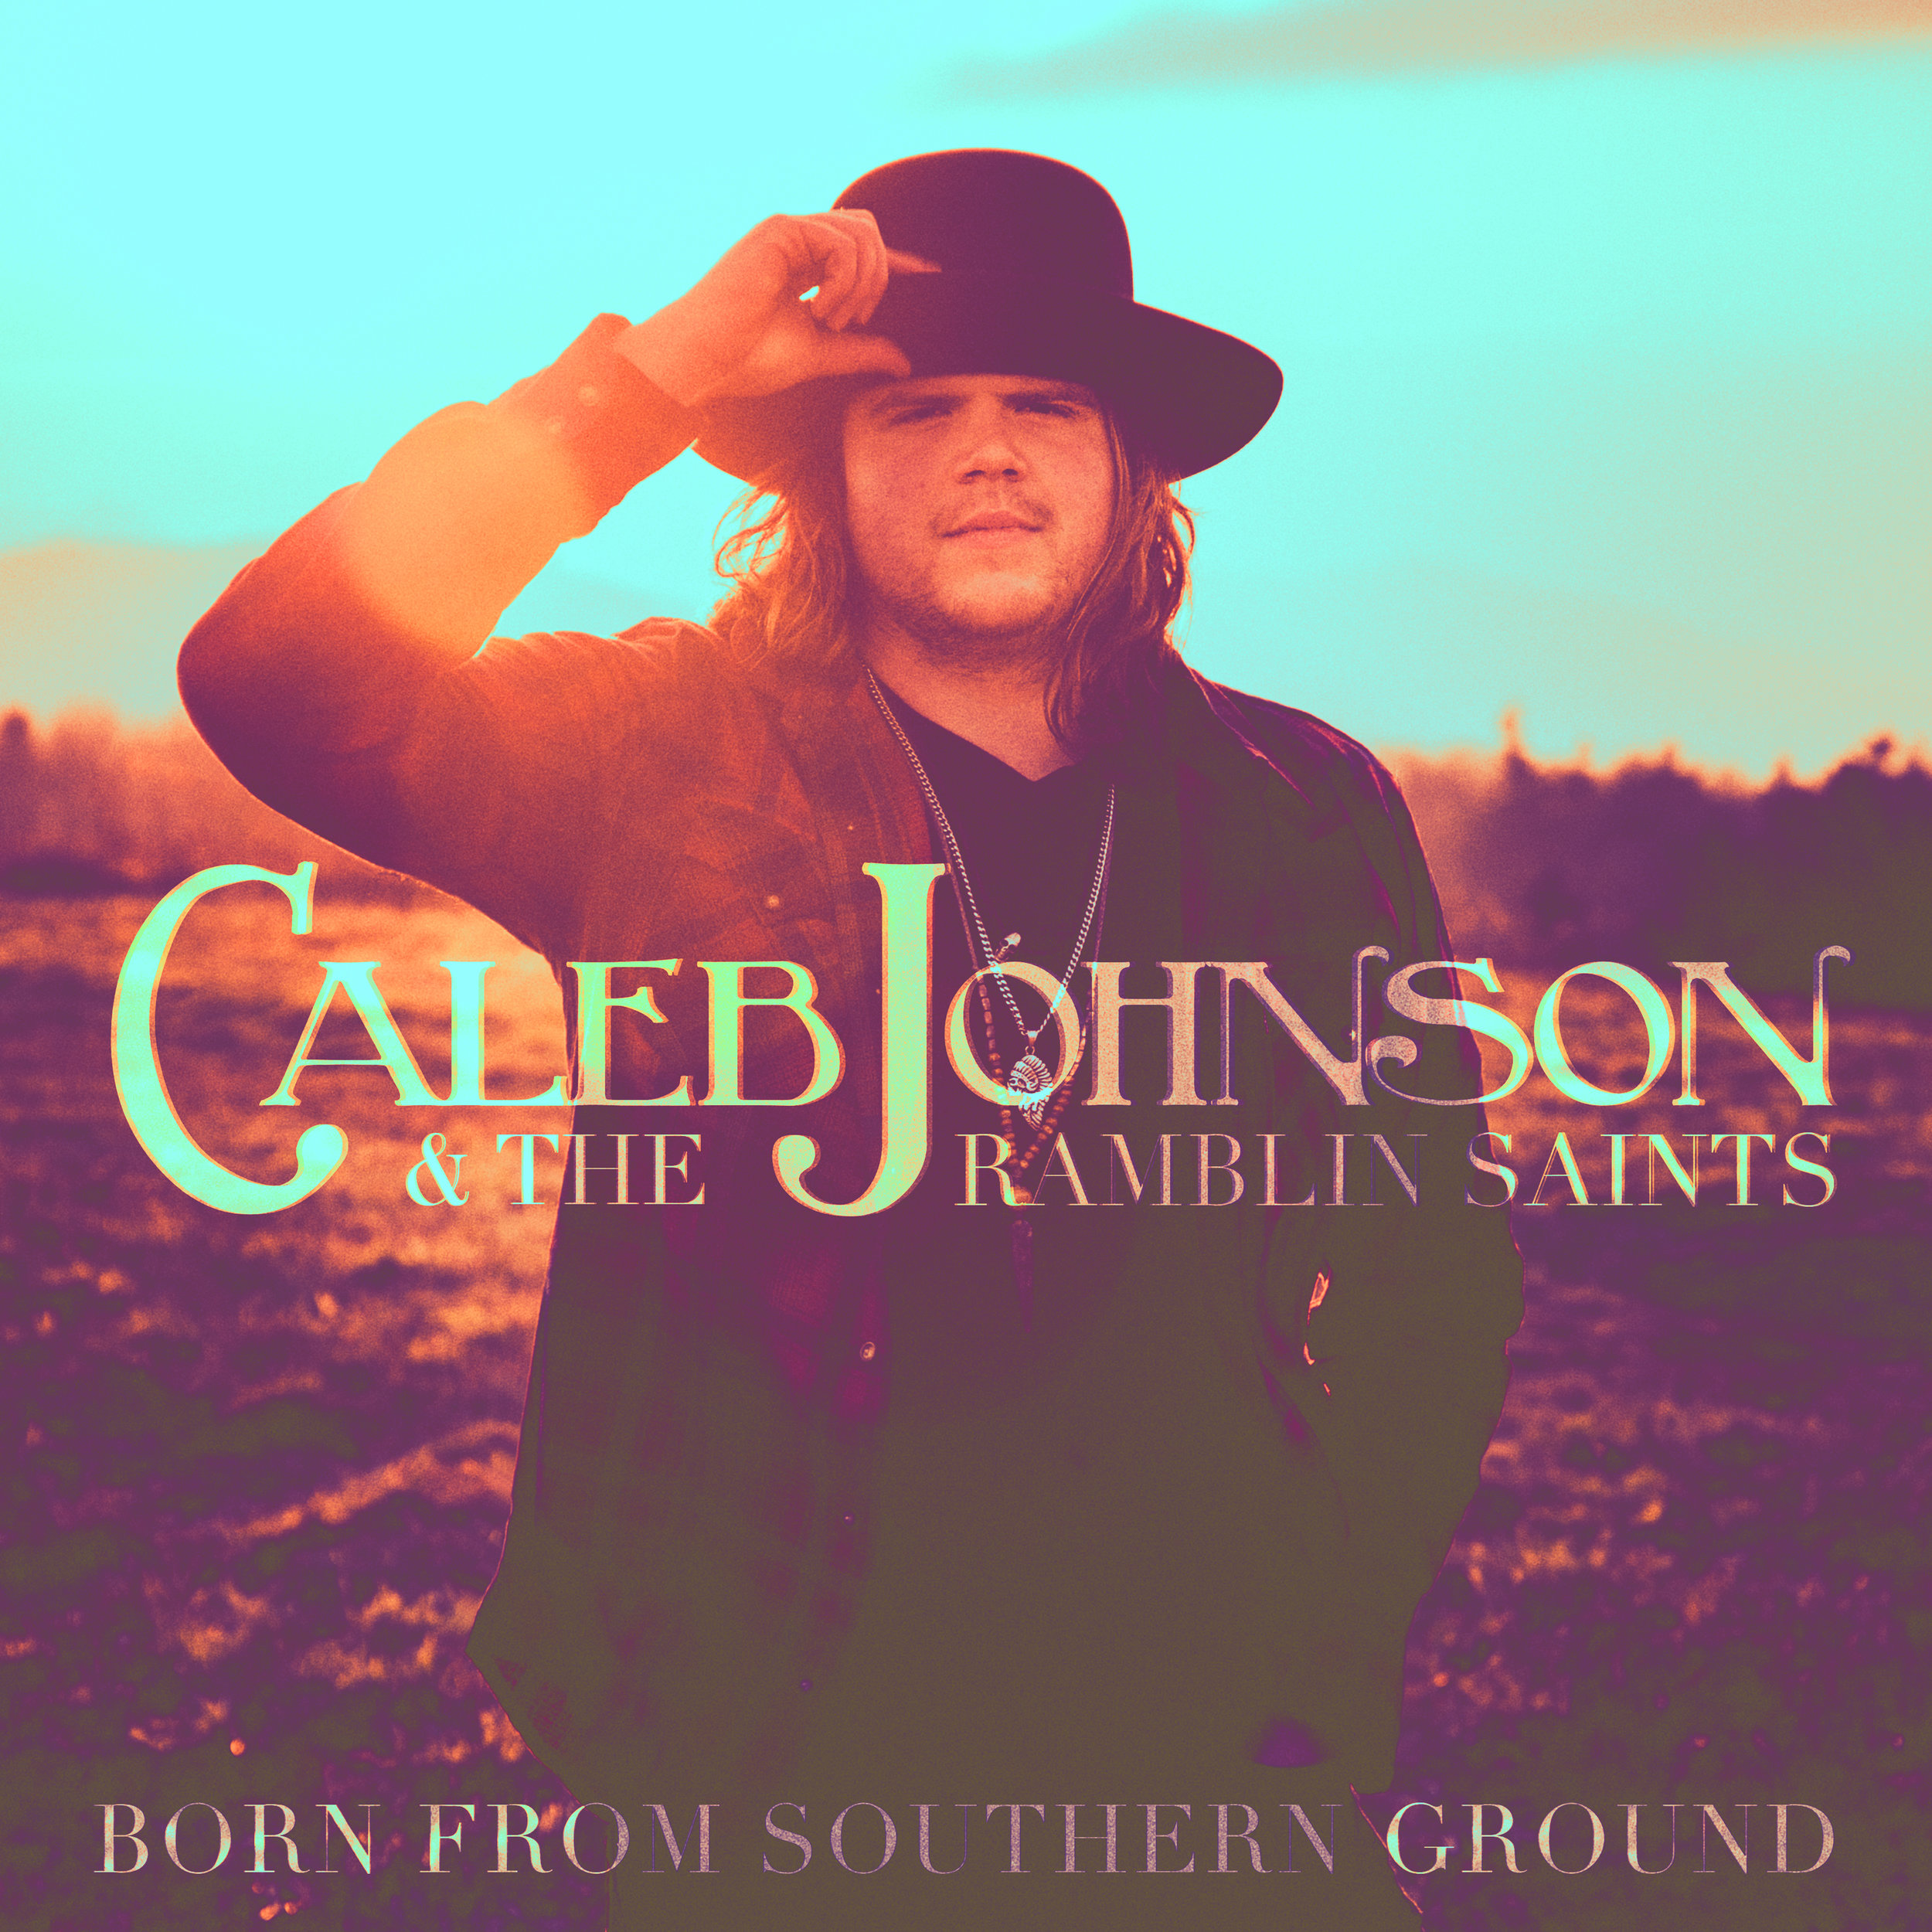 CJRS-BornFromSouthernGround-AlbumCover-FINAL.jpg